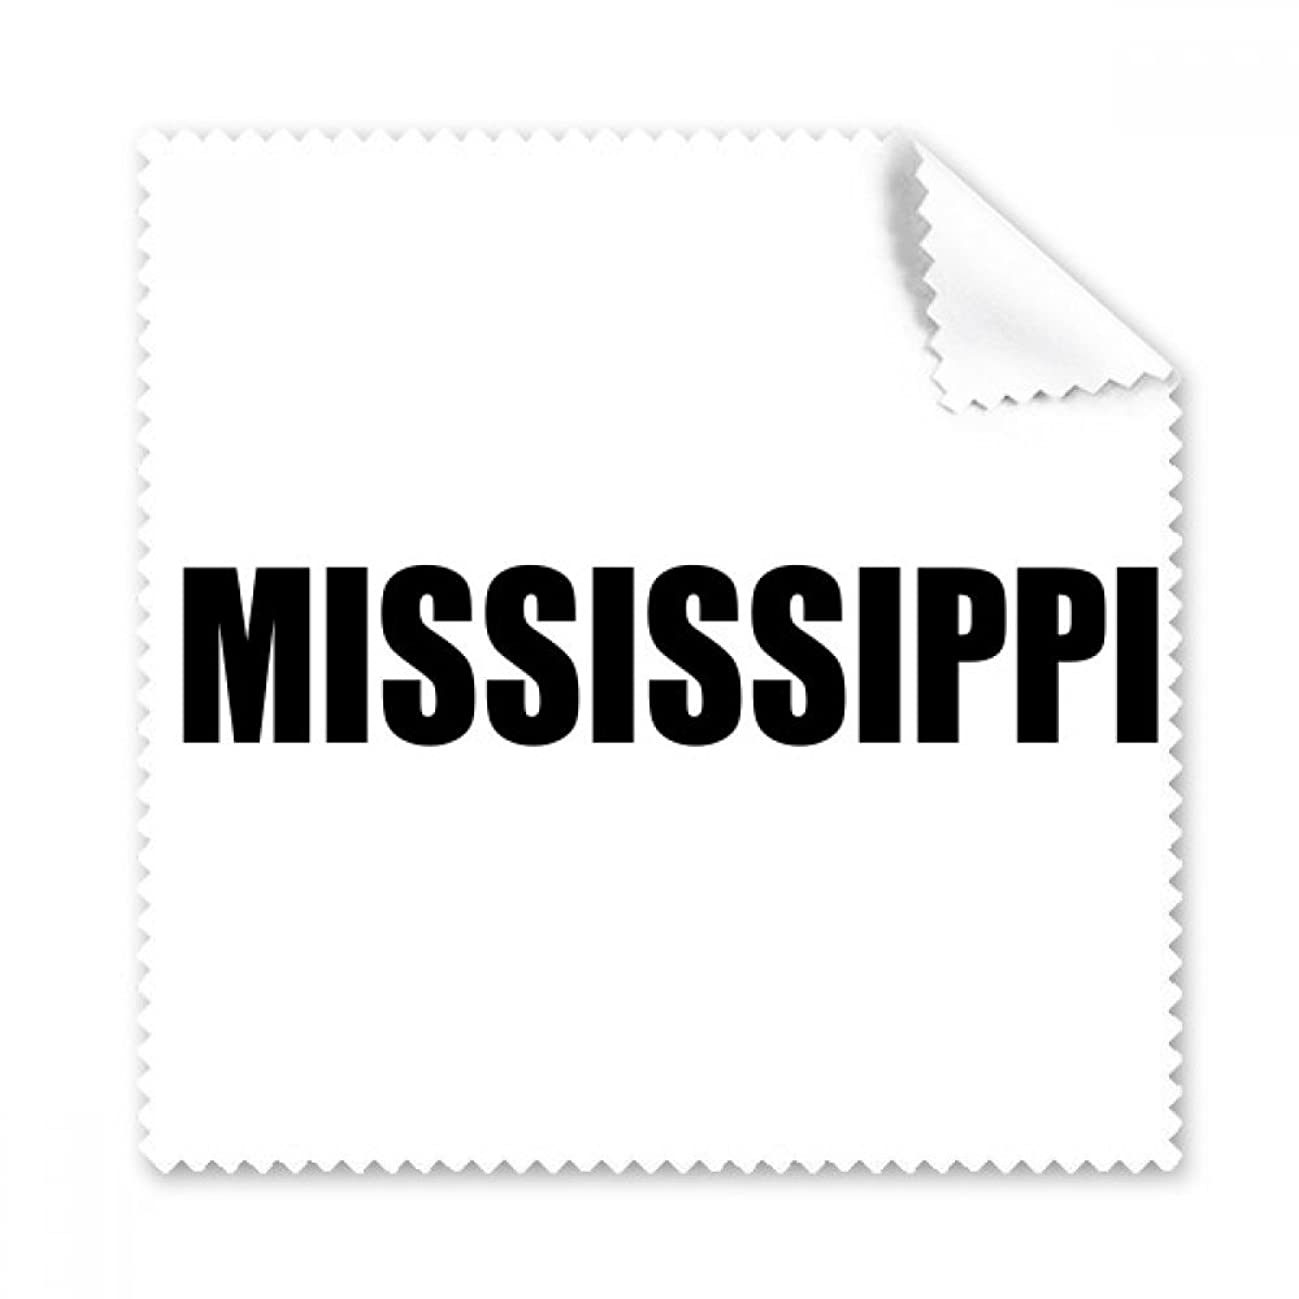 Mississippi America City Name Glasses Cloth Cleaning Cloth Phone Screen Cleaner 5pcs Gift